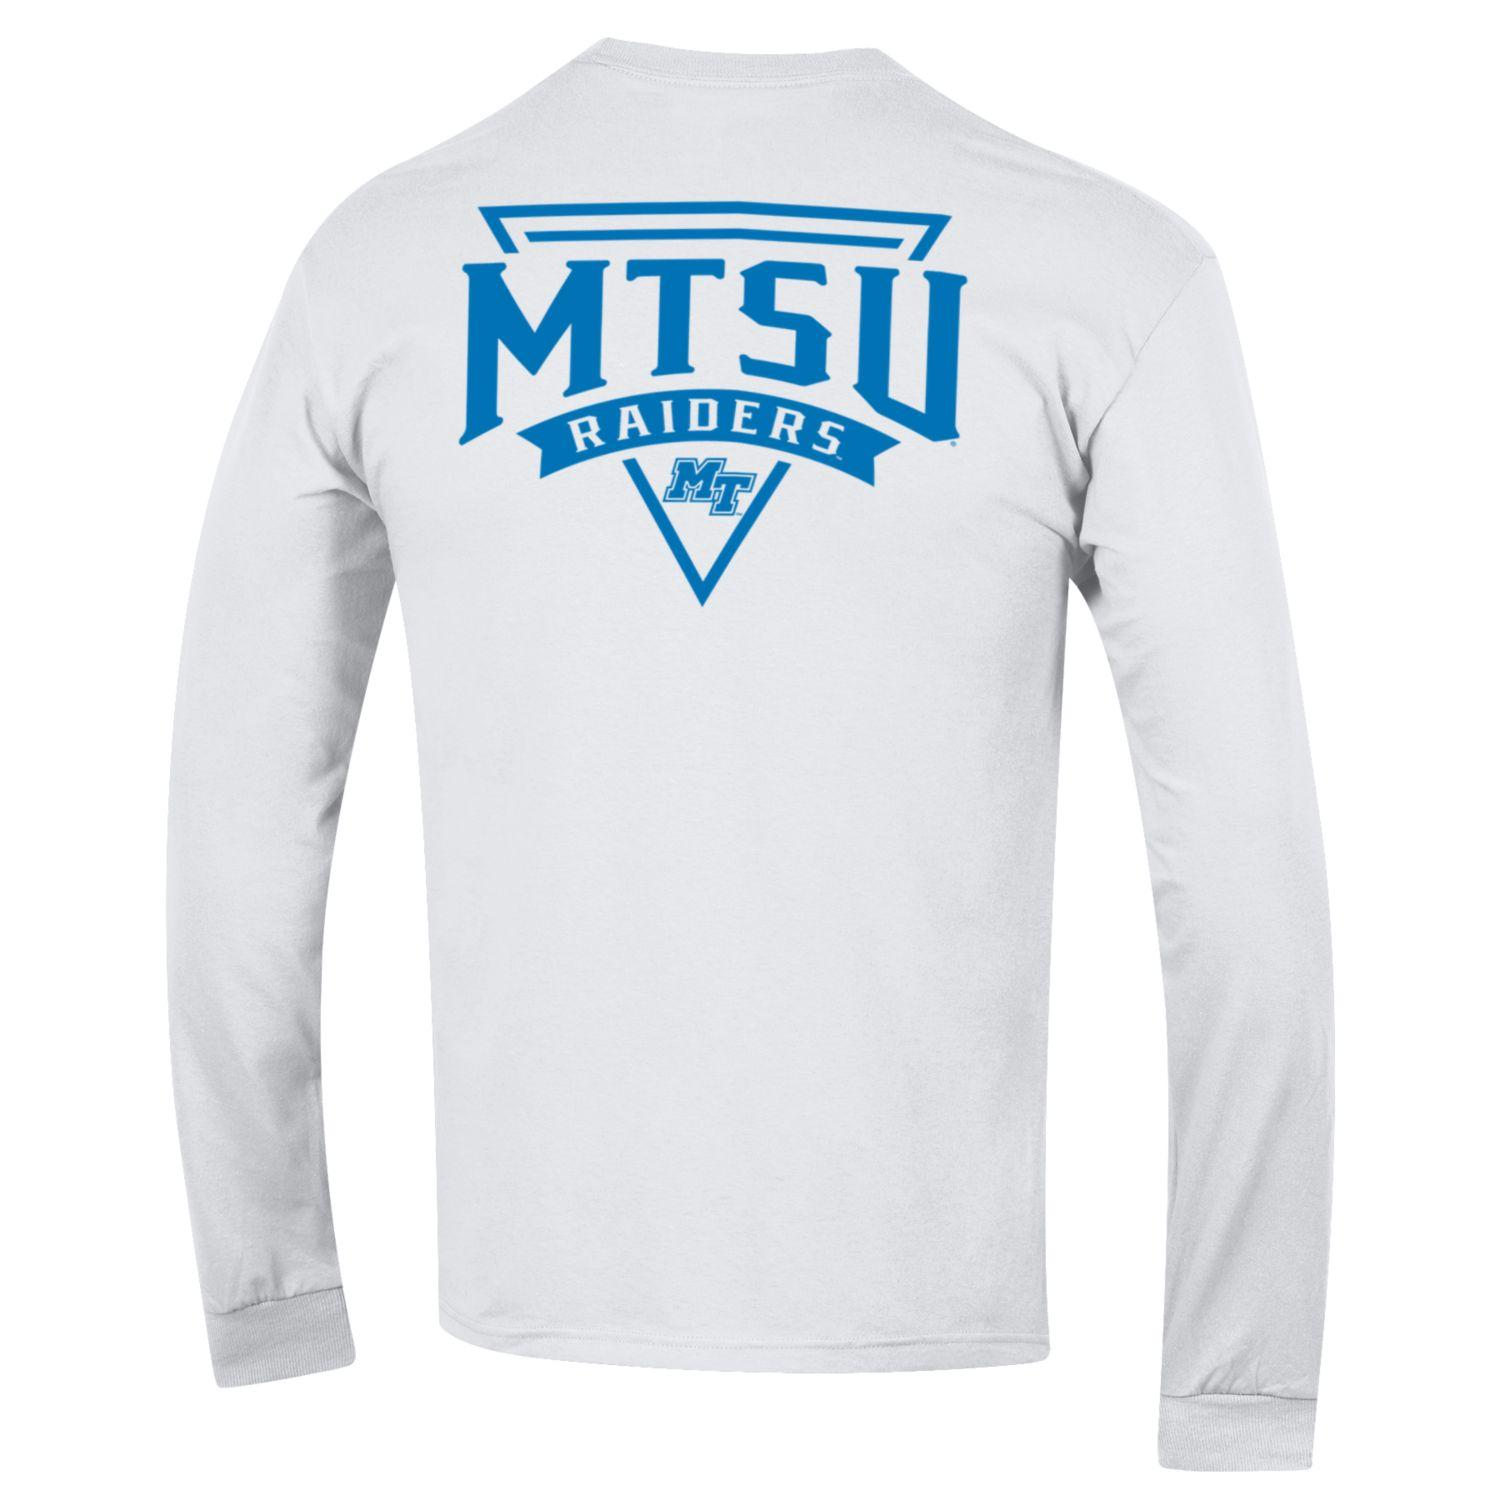 MTSU Arch Raiders Long Sleeve Shirt